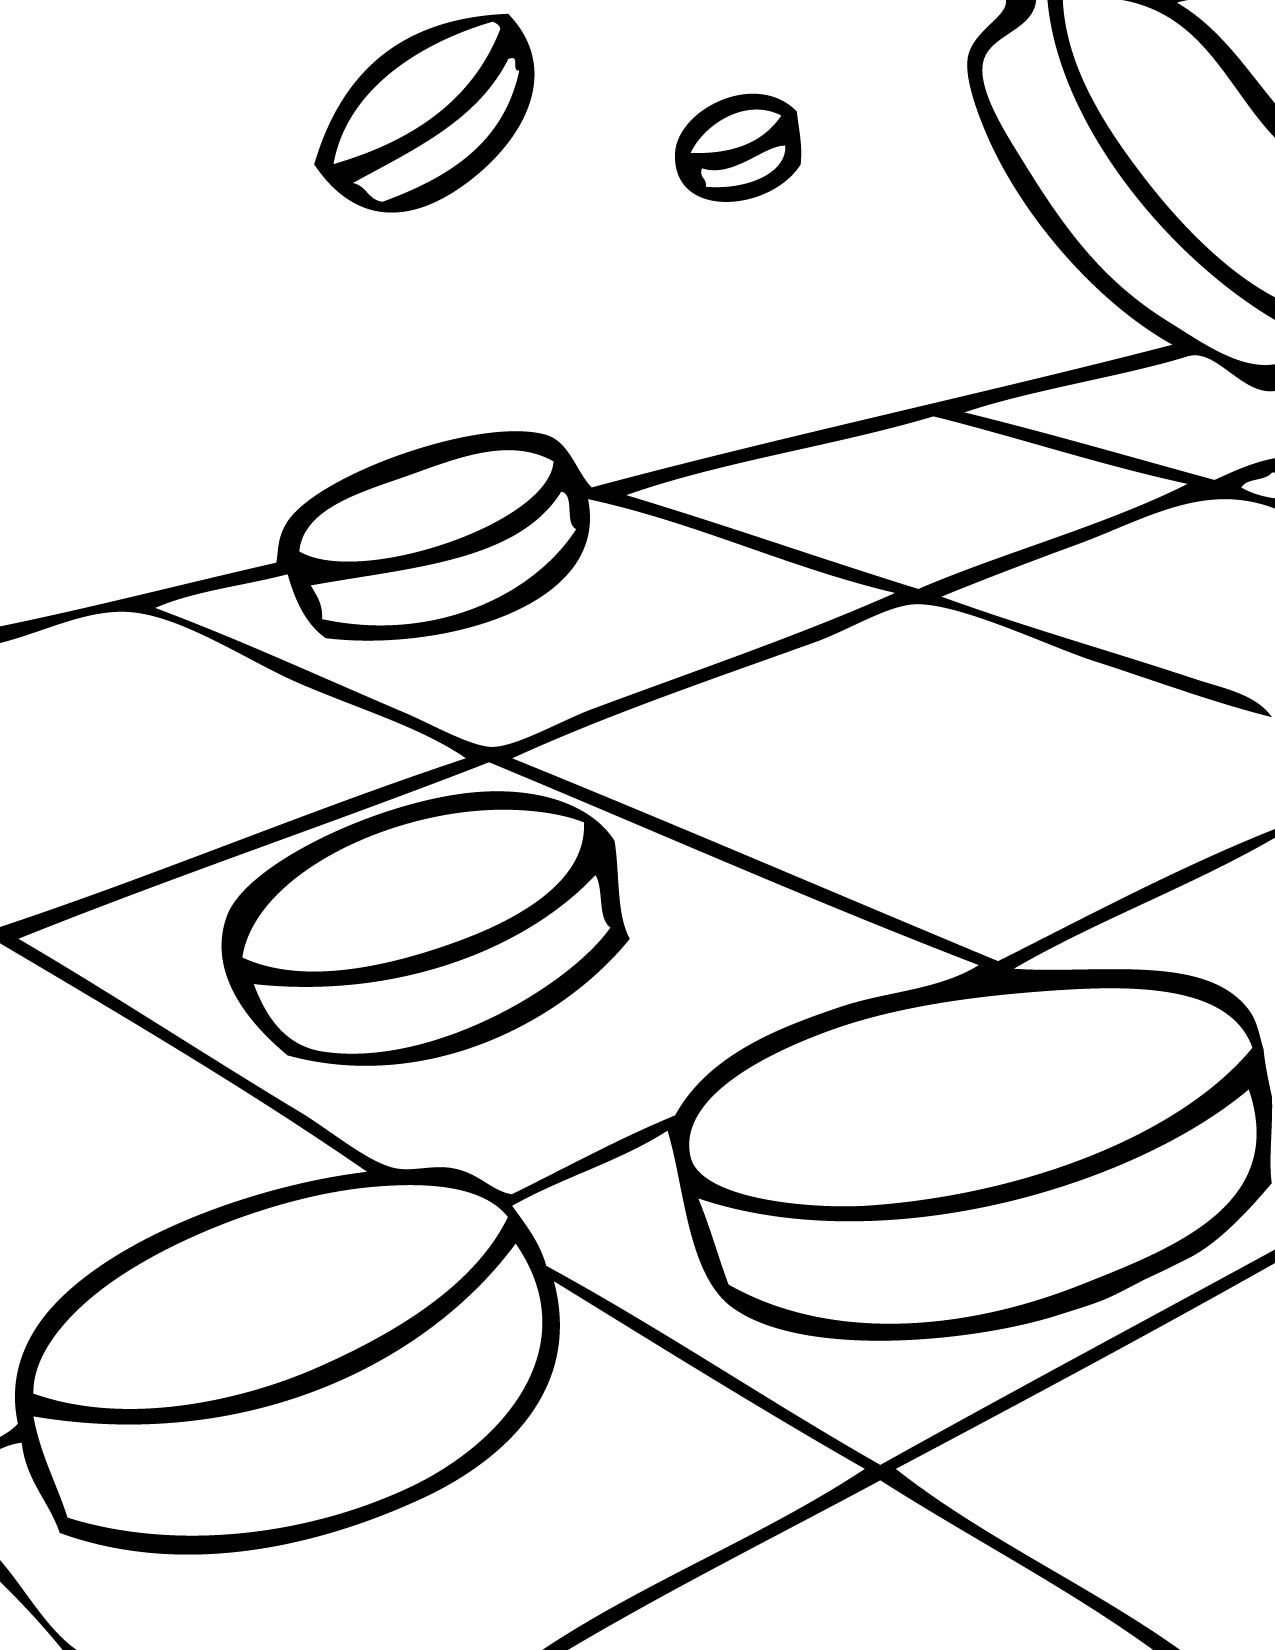 Checkers Coloring Page Handipoints